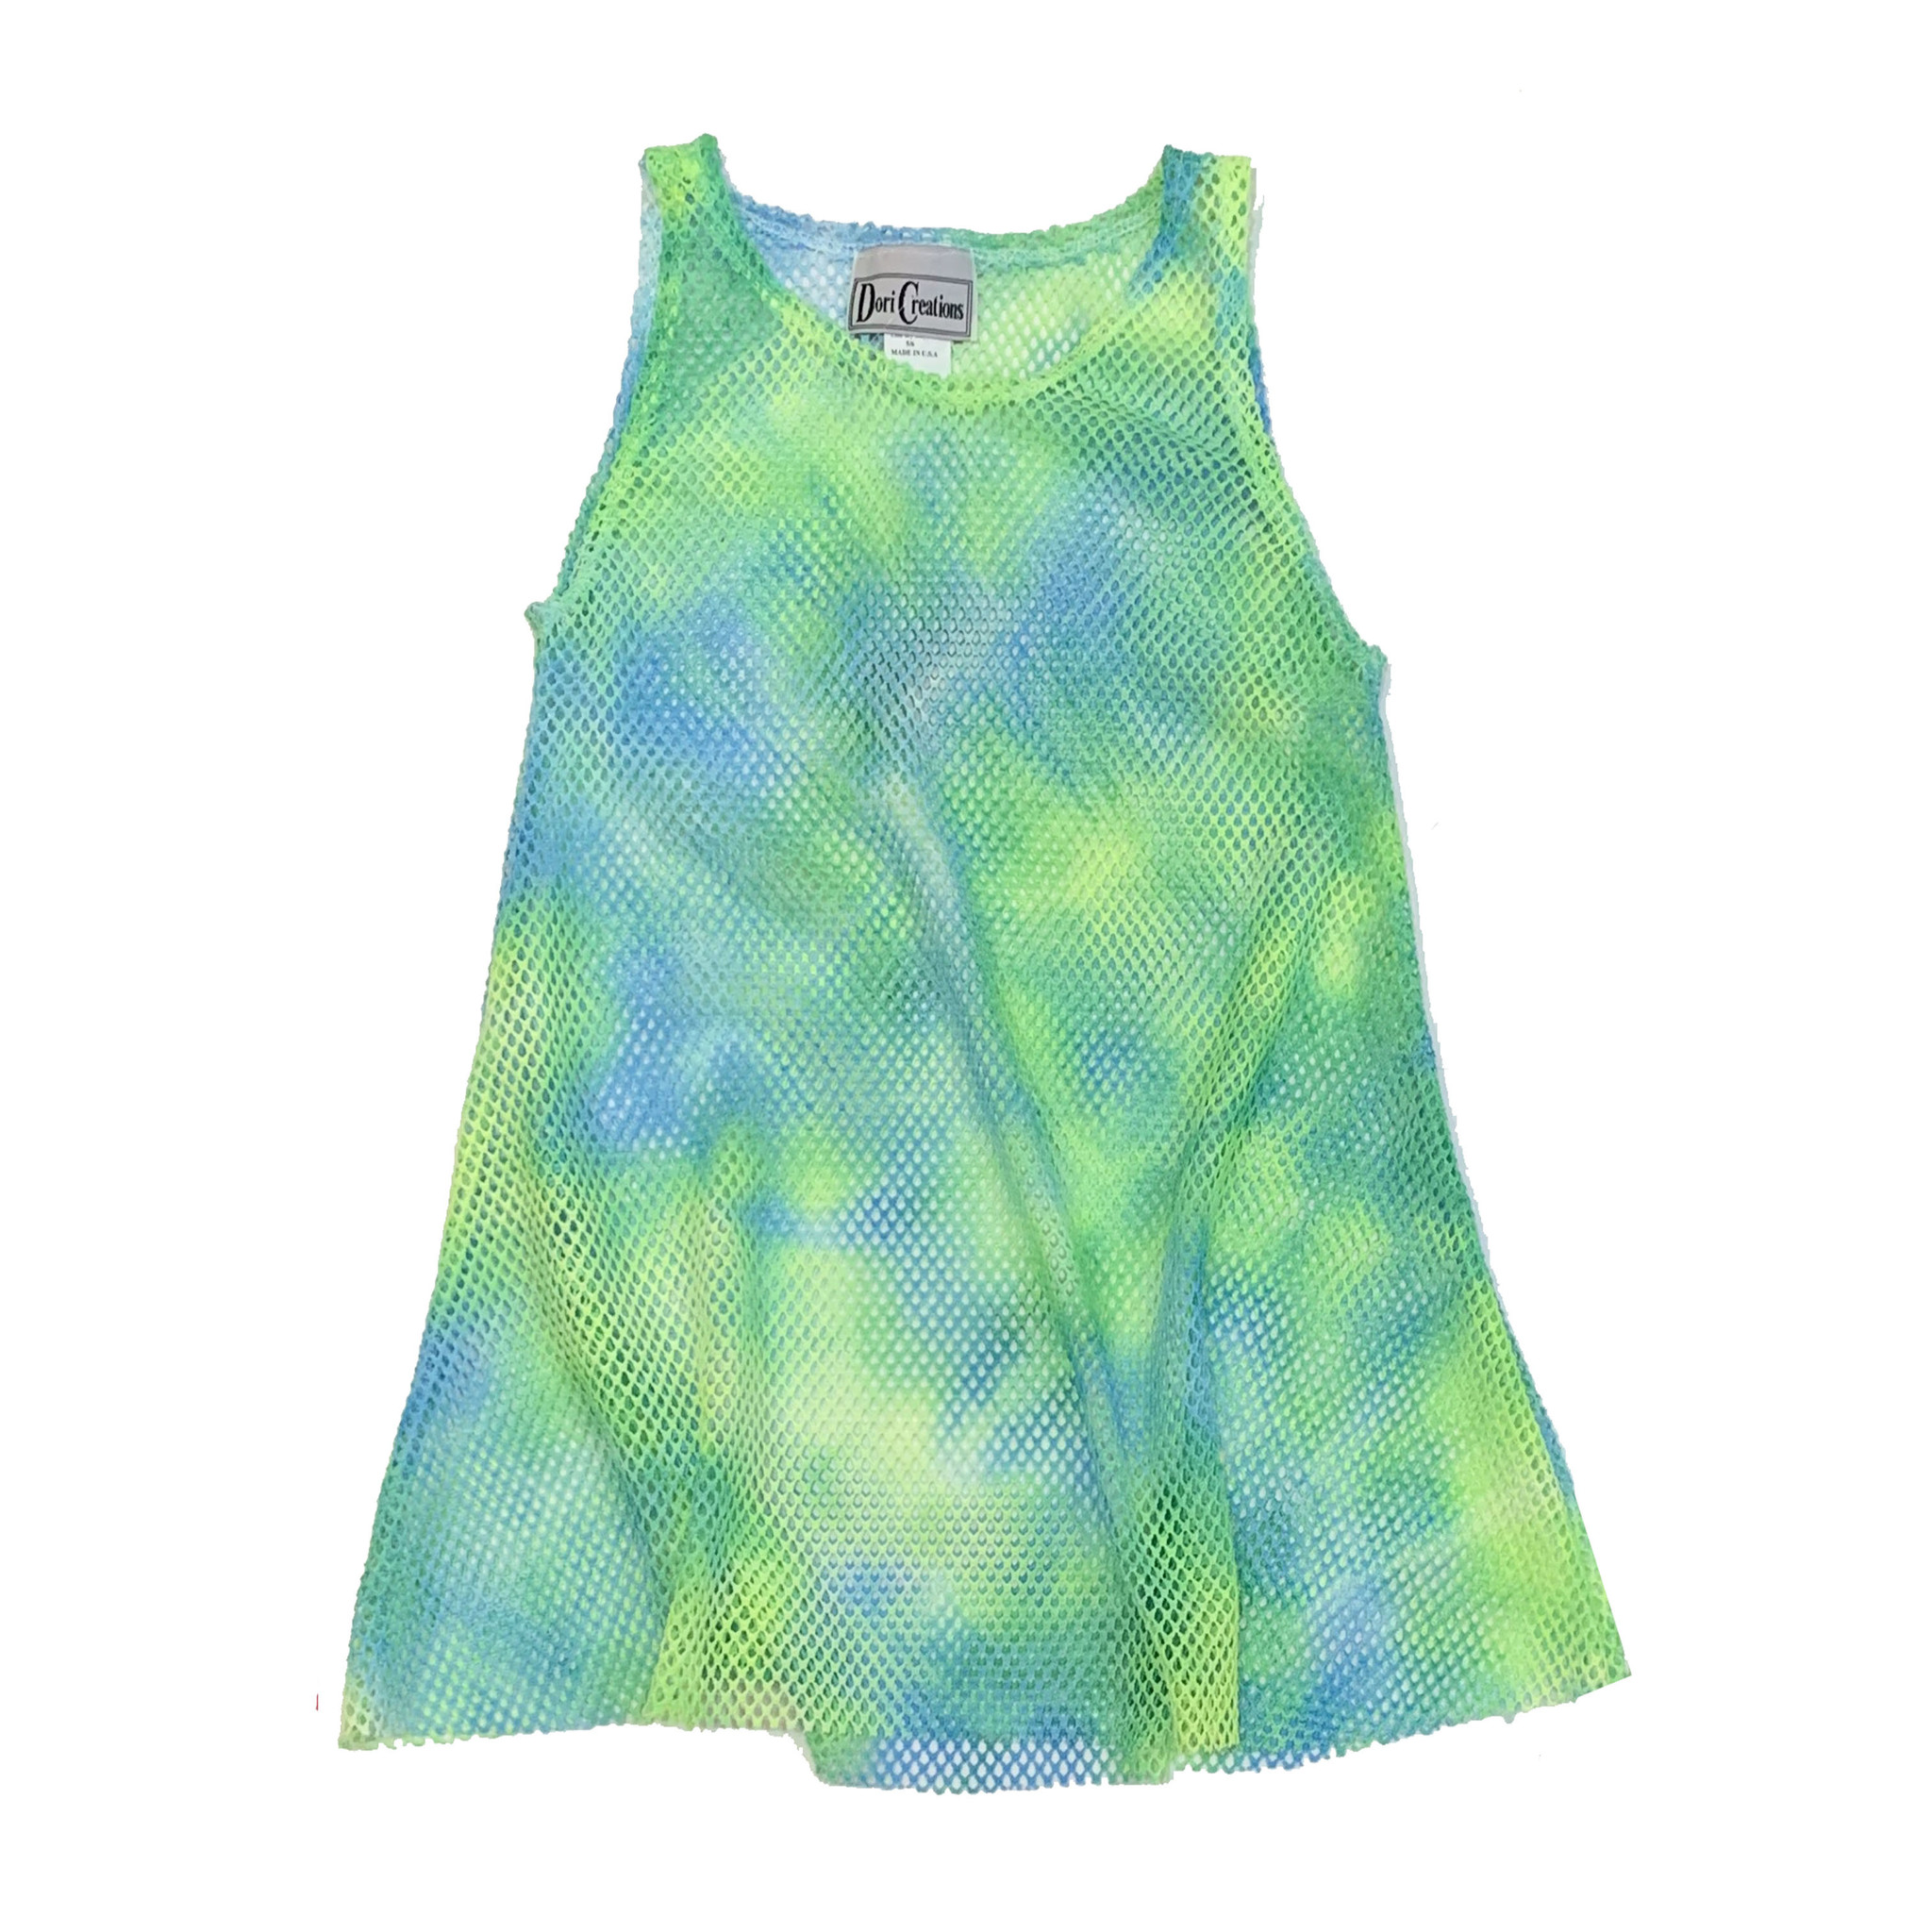 Dori Creations Neon Green & Blue Mesh Coverup